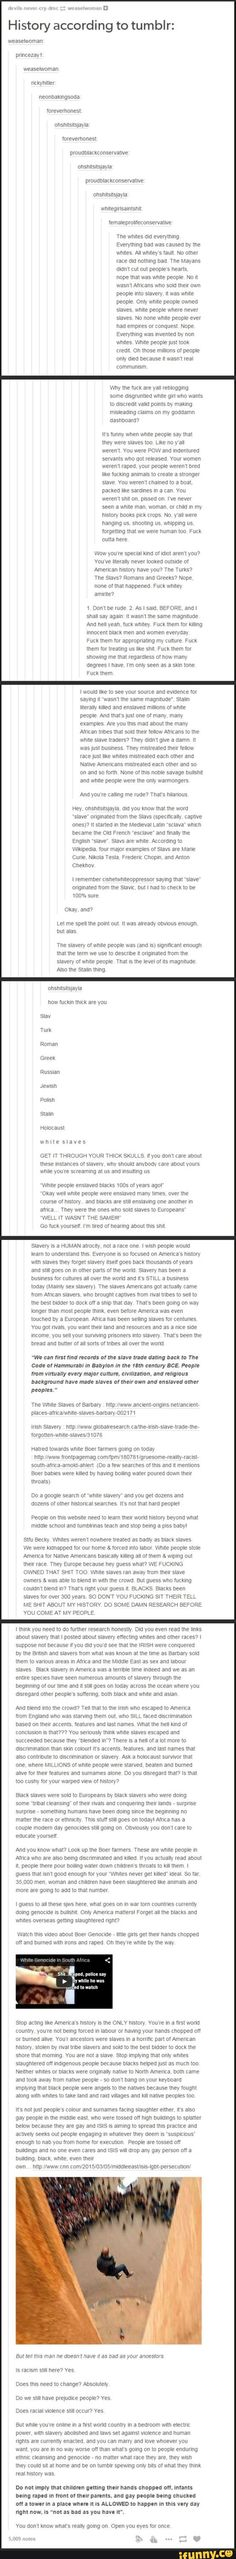 Sorry for the language but this needs to be said. Racism needs to end once and for all, from ALL sides. In ALL countries. People need to stop blaming people for the PAST that they CANNOT control and they need to start facing the real issues of this world that are still active. You CAN do something about issues that are ACTIVE.